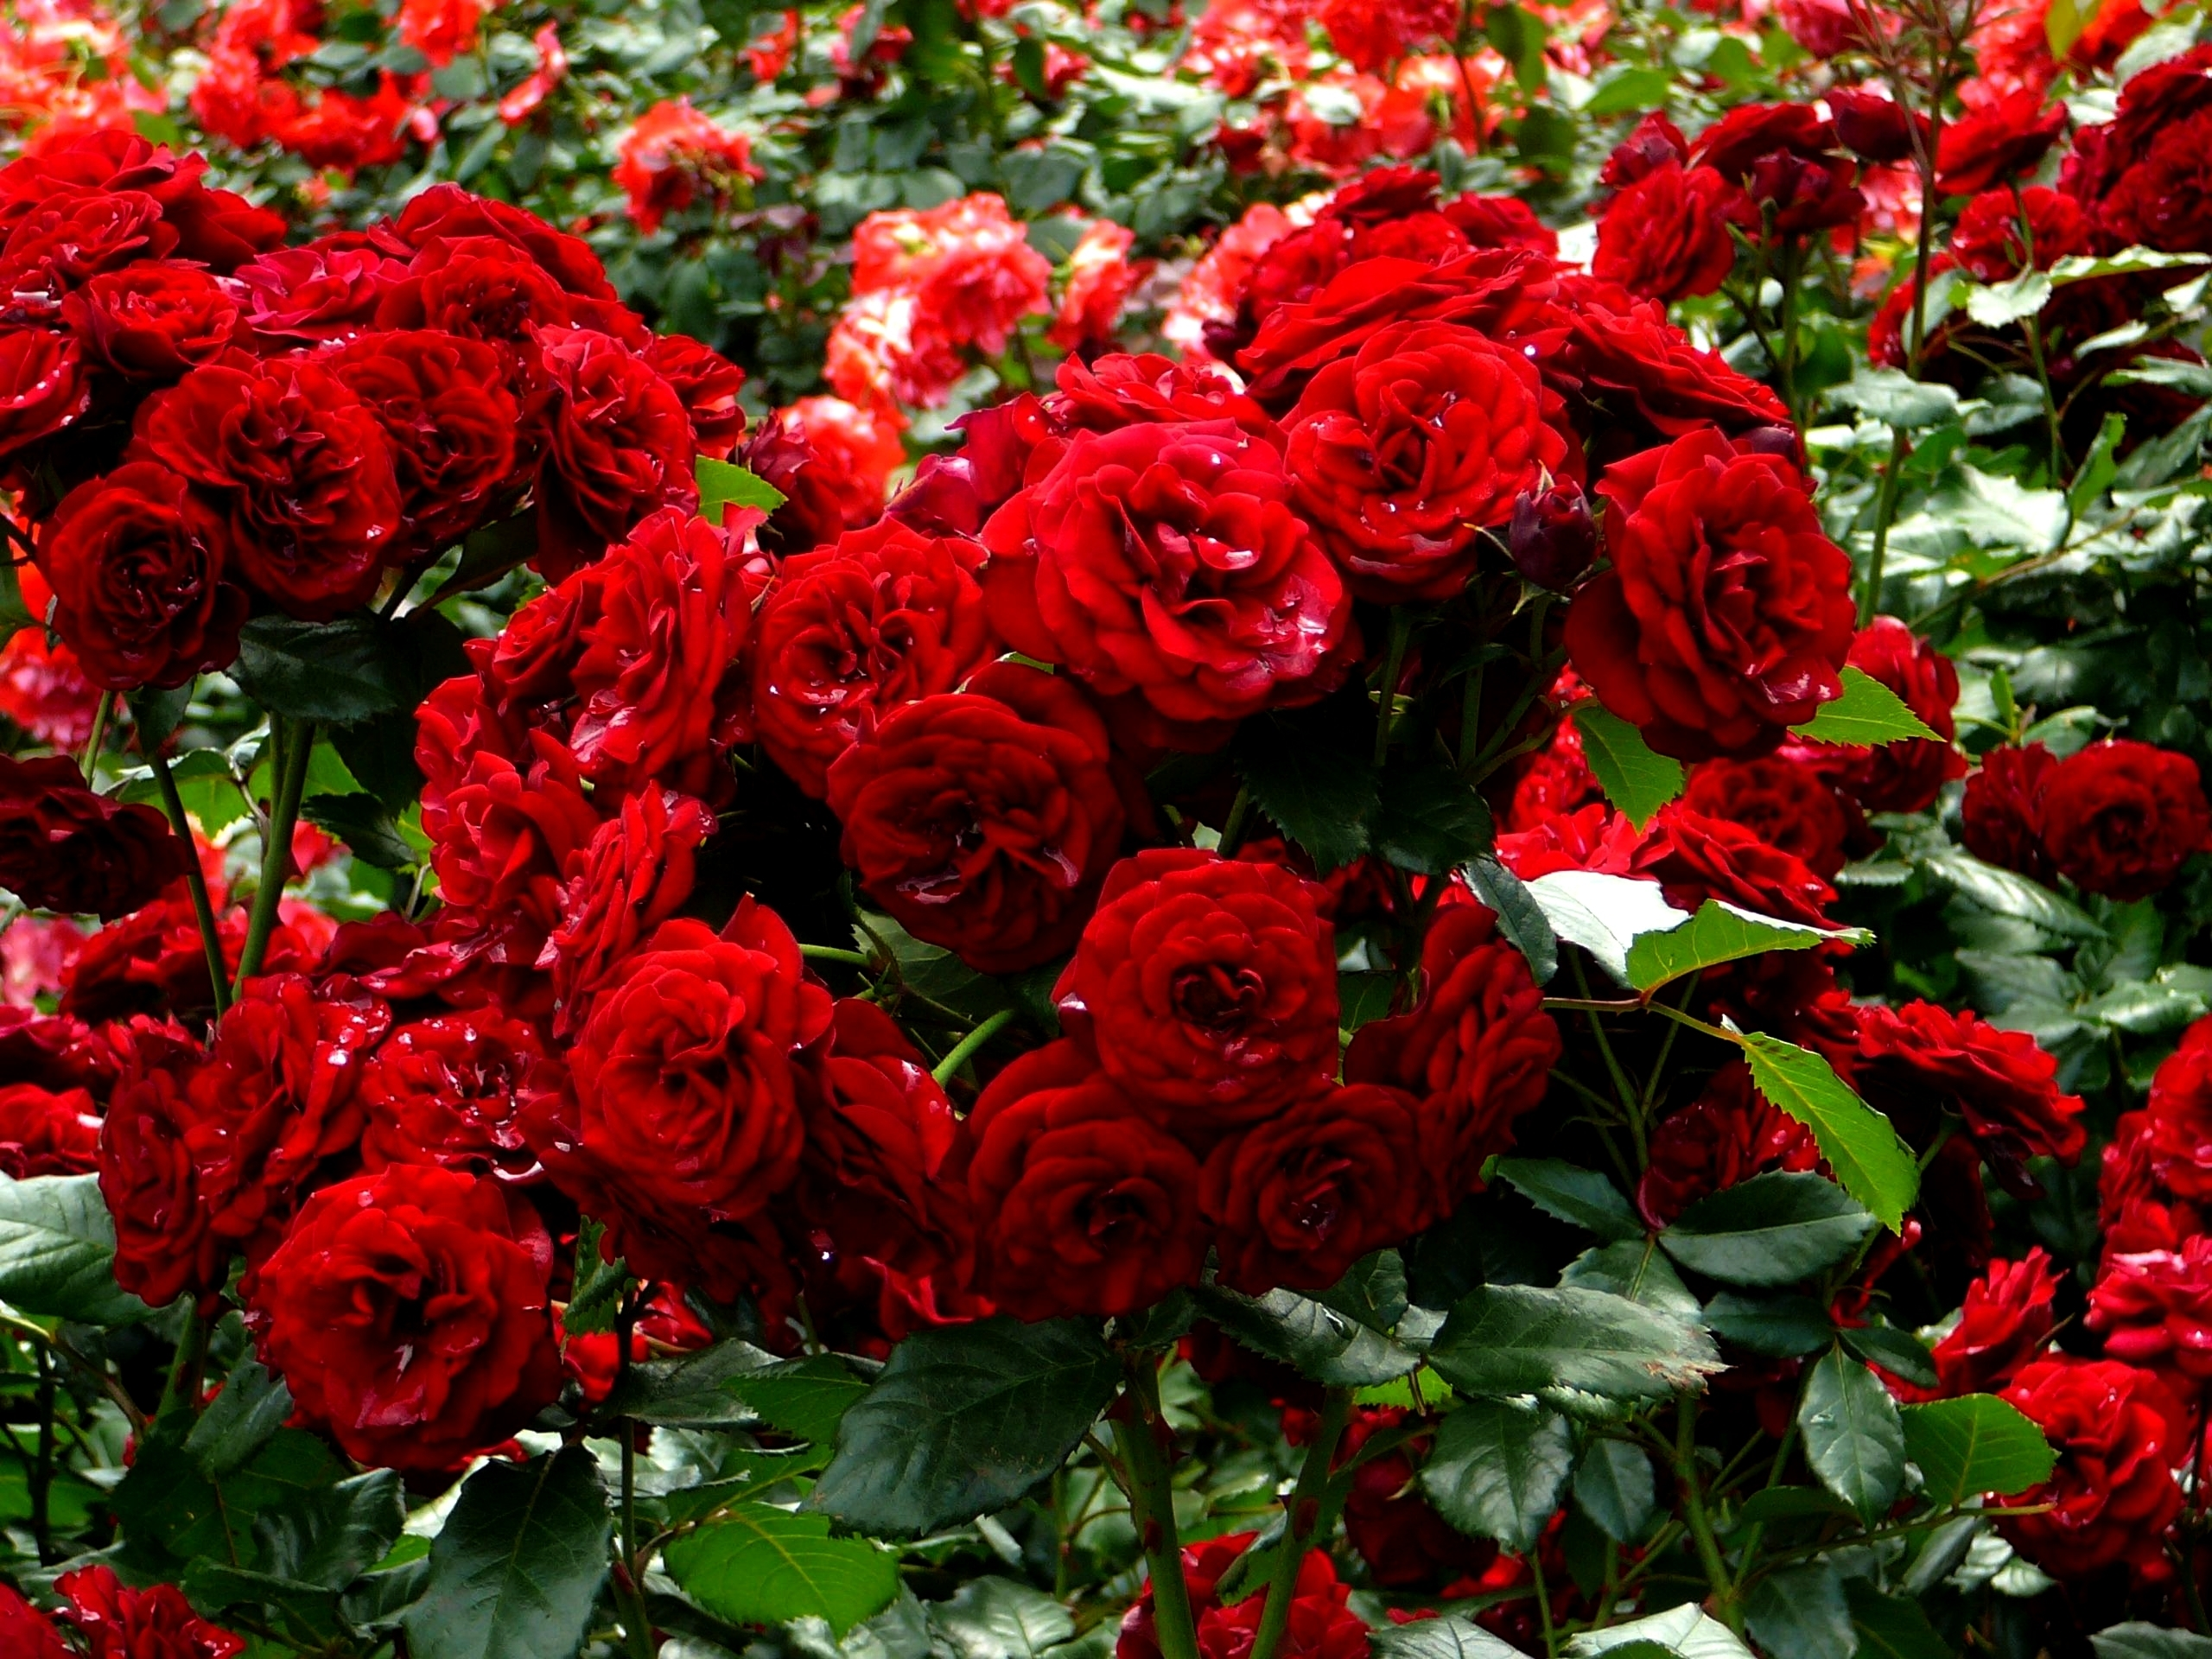 Roses many red shrubs flowers e wallpaper 2560x1920 for Arbustos de jardin fotos